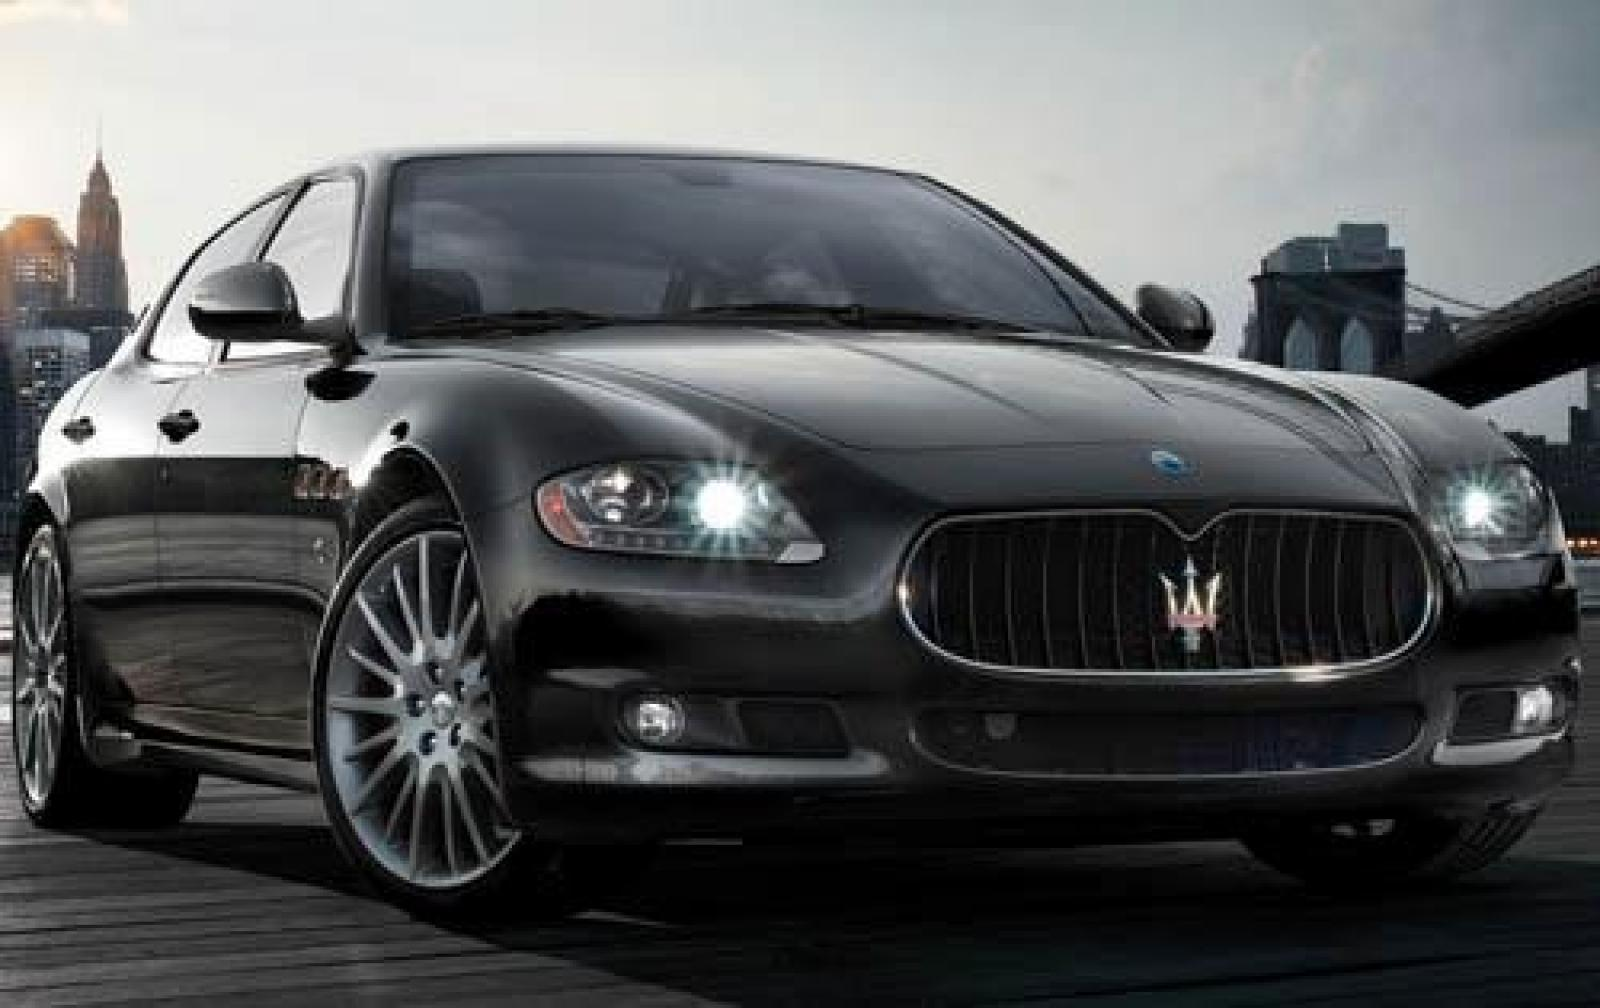 2011 Maserati Quattroporte Information And Photos Zombiedrive